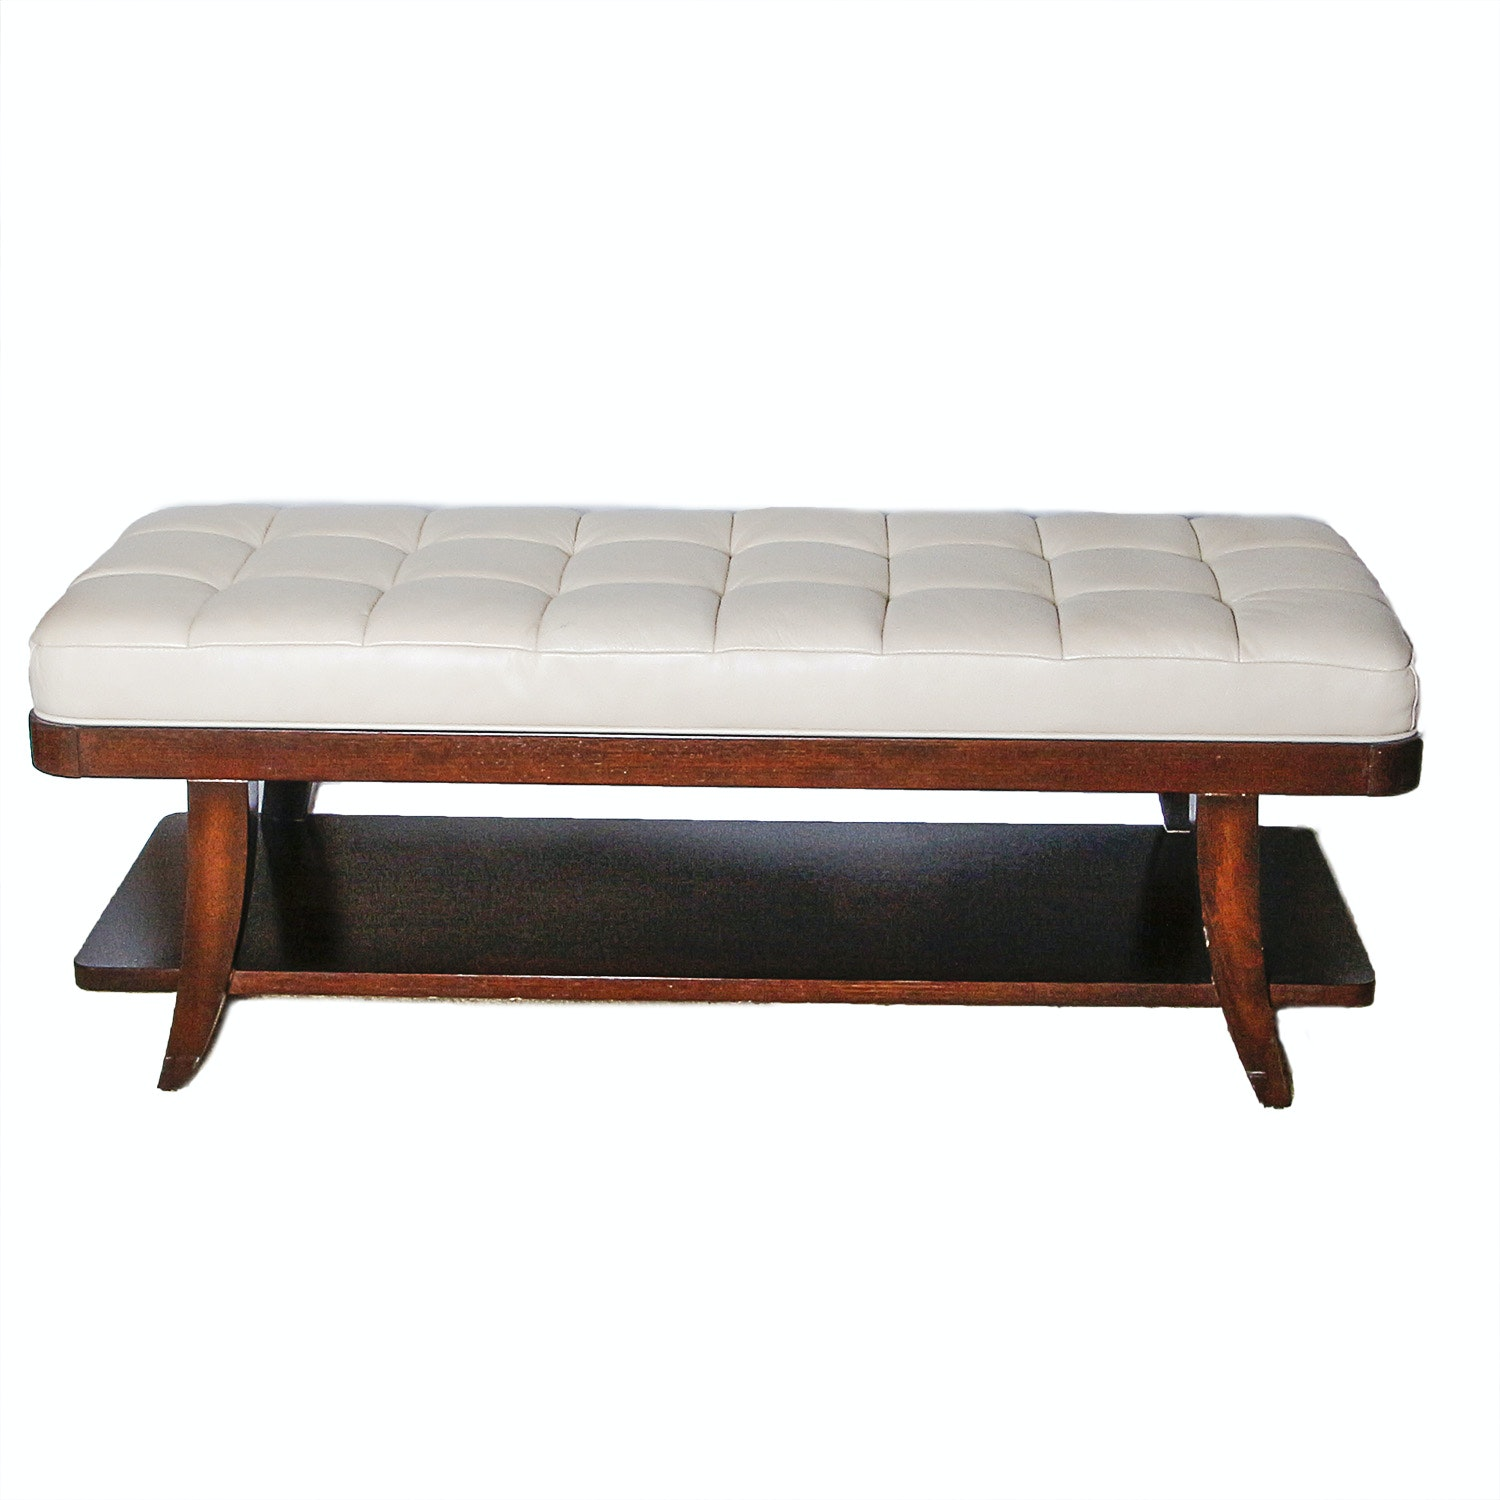 Wooden Bench With Leather Seat